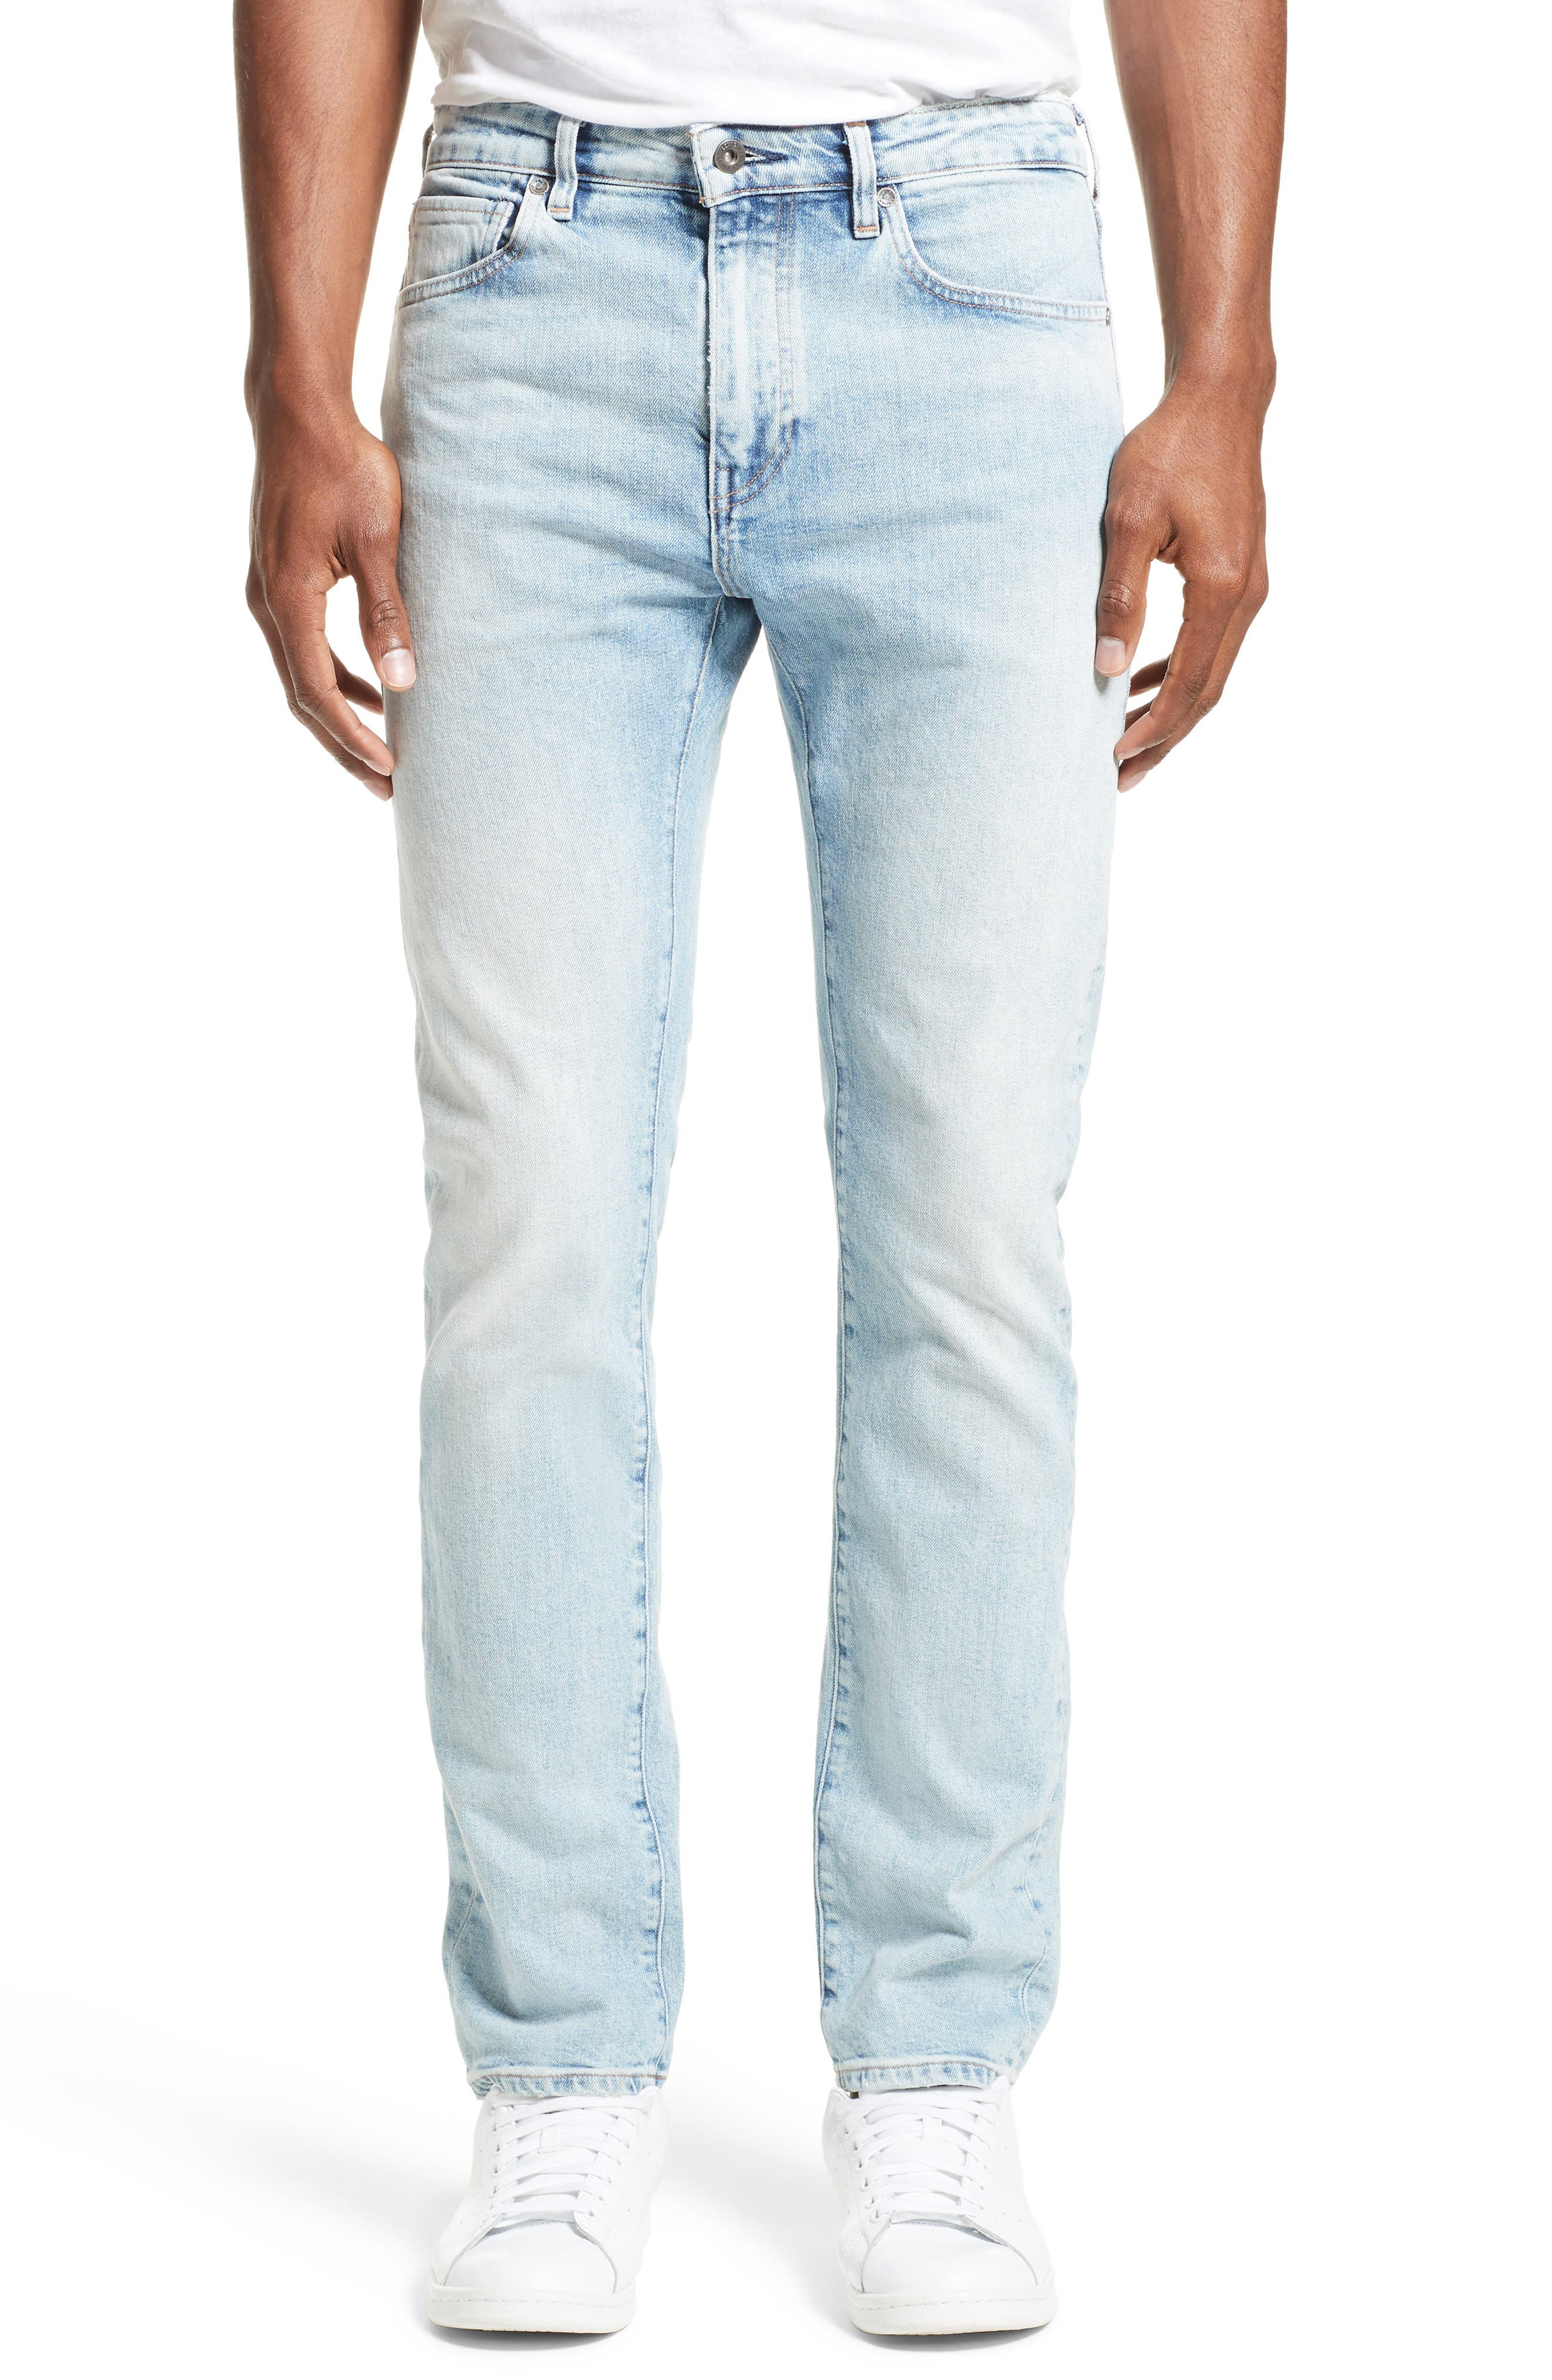 Main Image - Levi's® Made & Crafted™ Tack Slim Fit Jeans